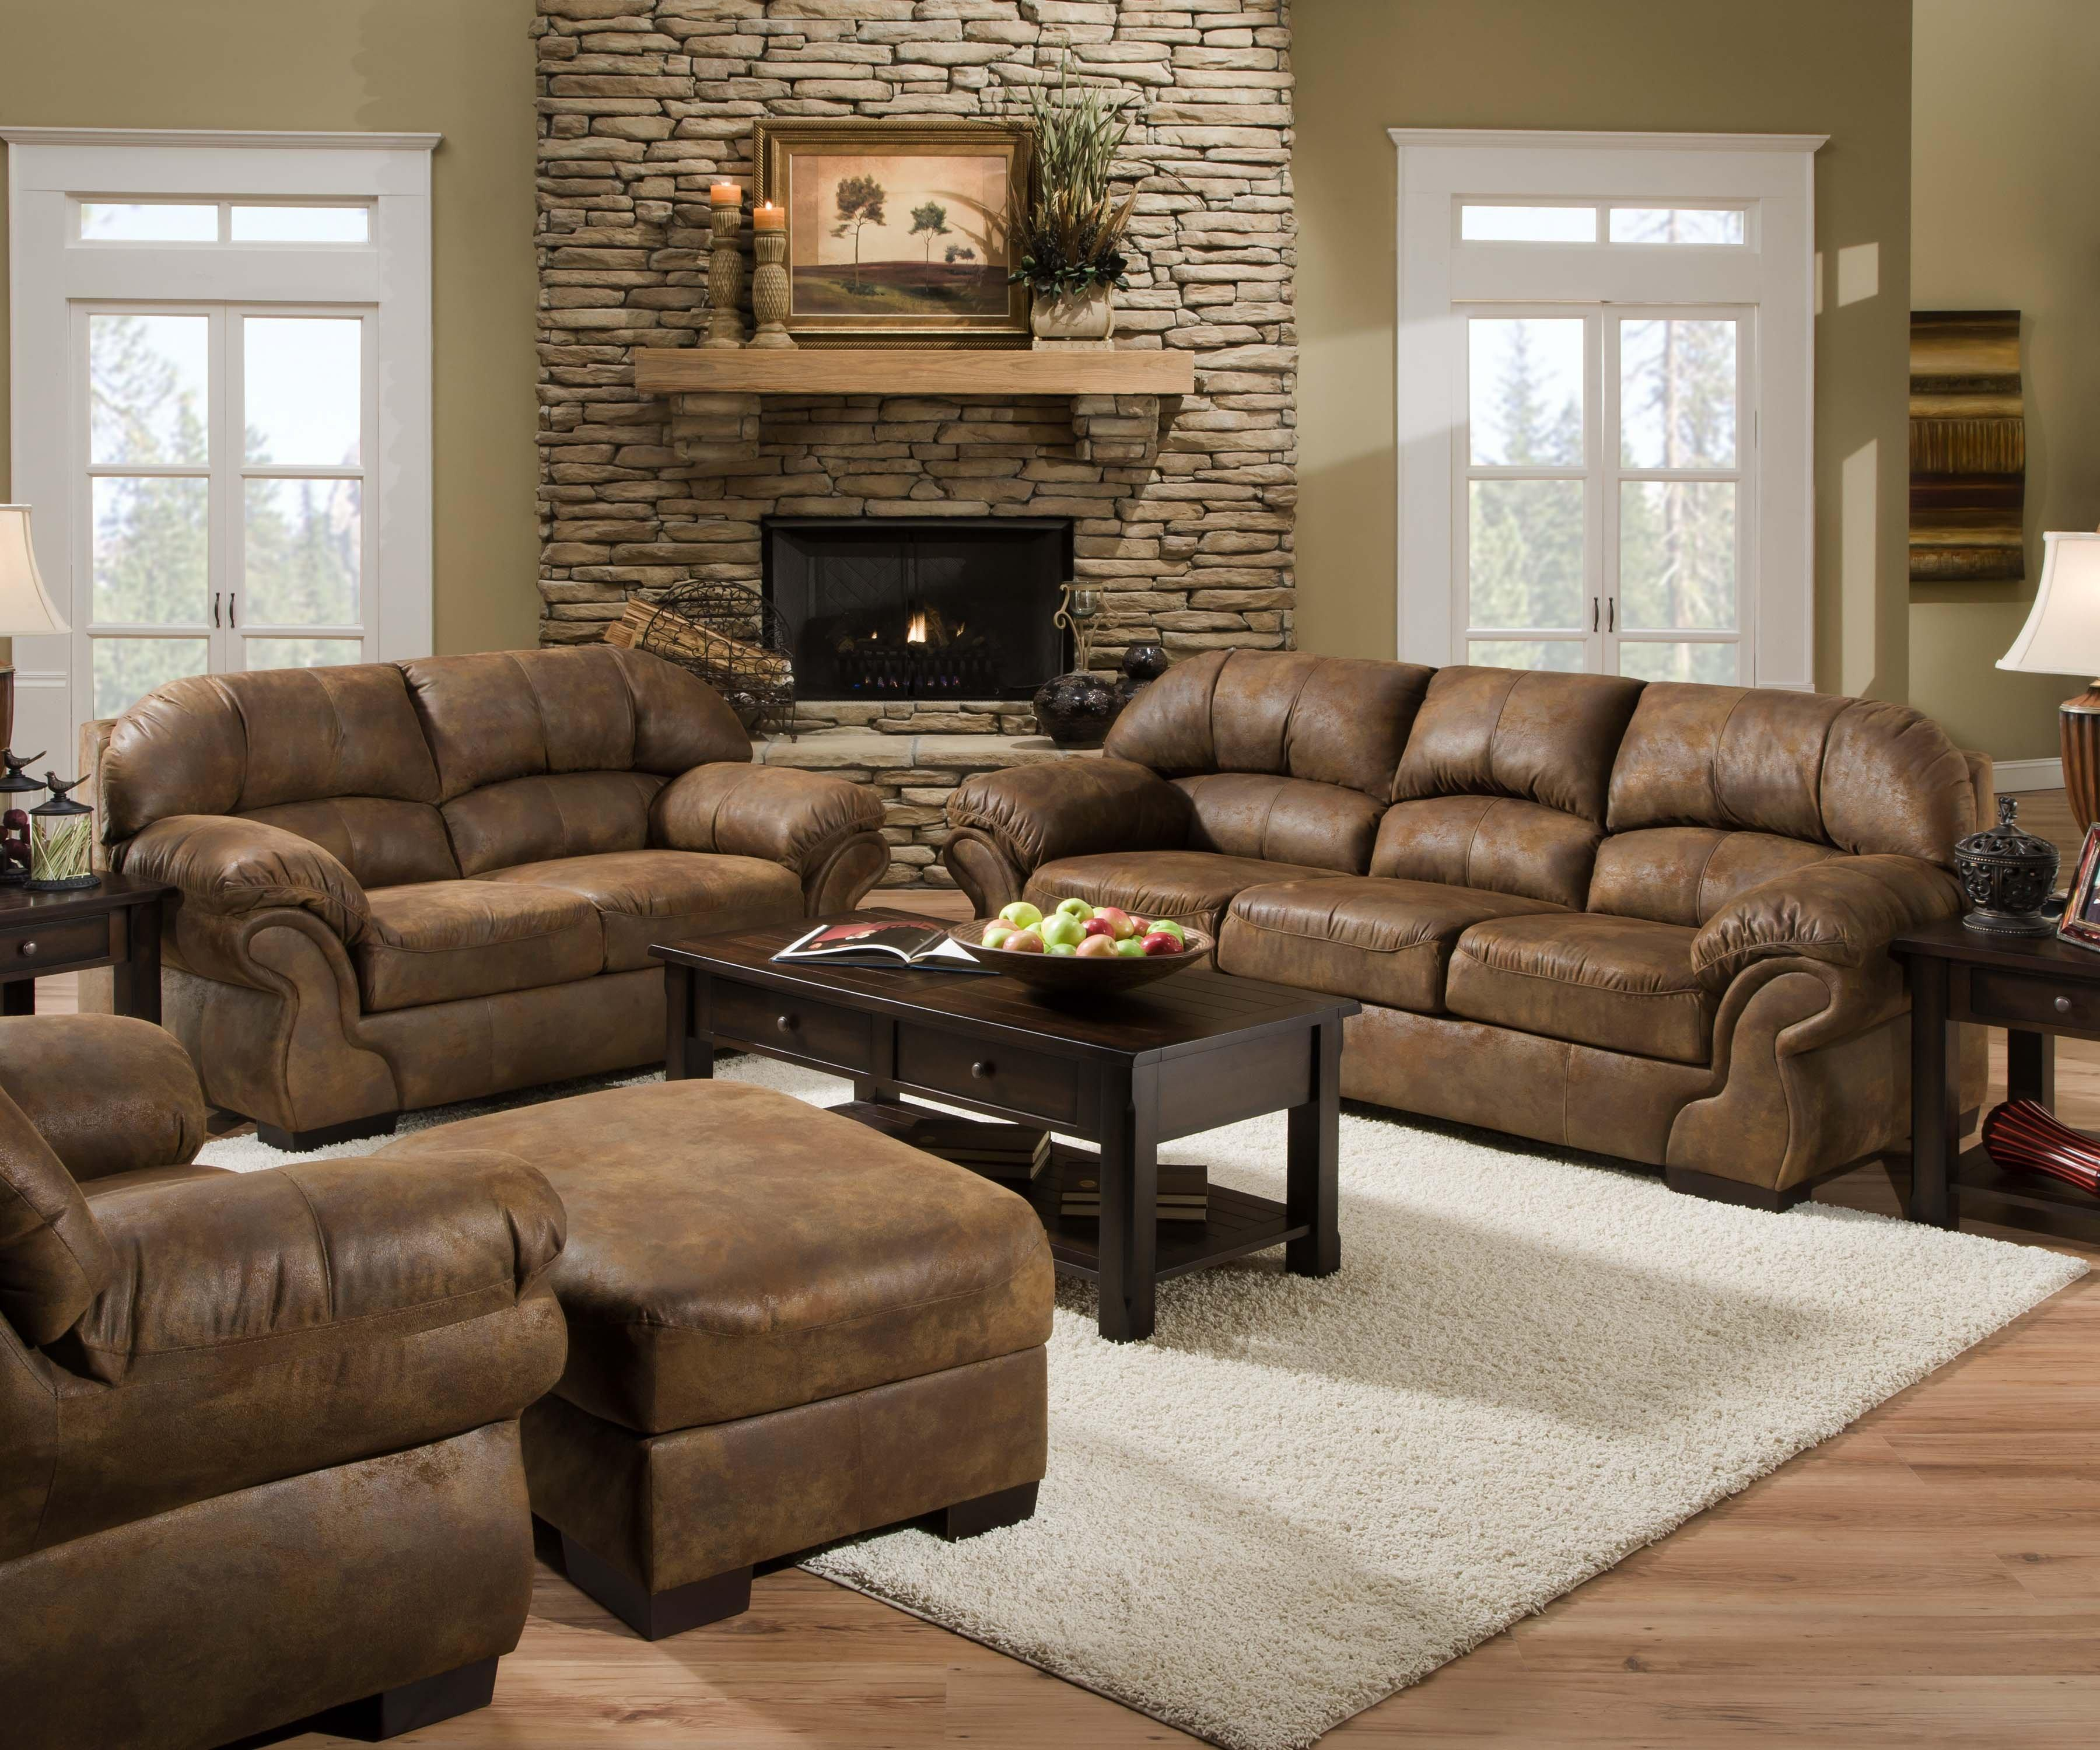 United furniture industries 6270 stationary living room for Living room furniture groups